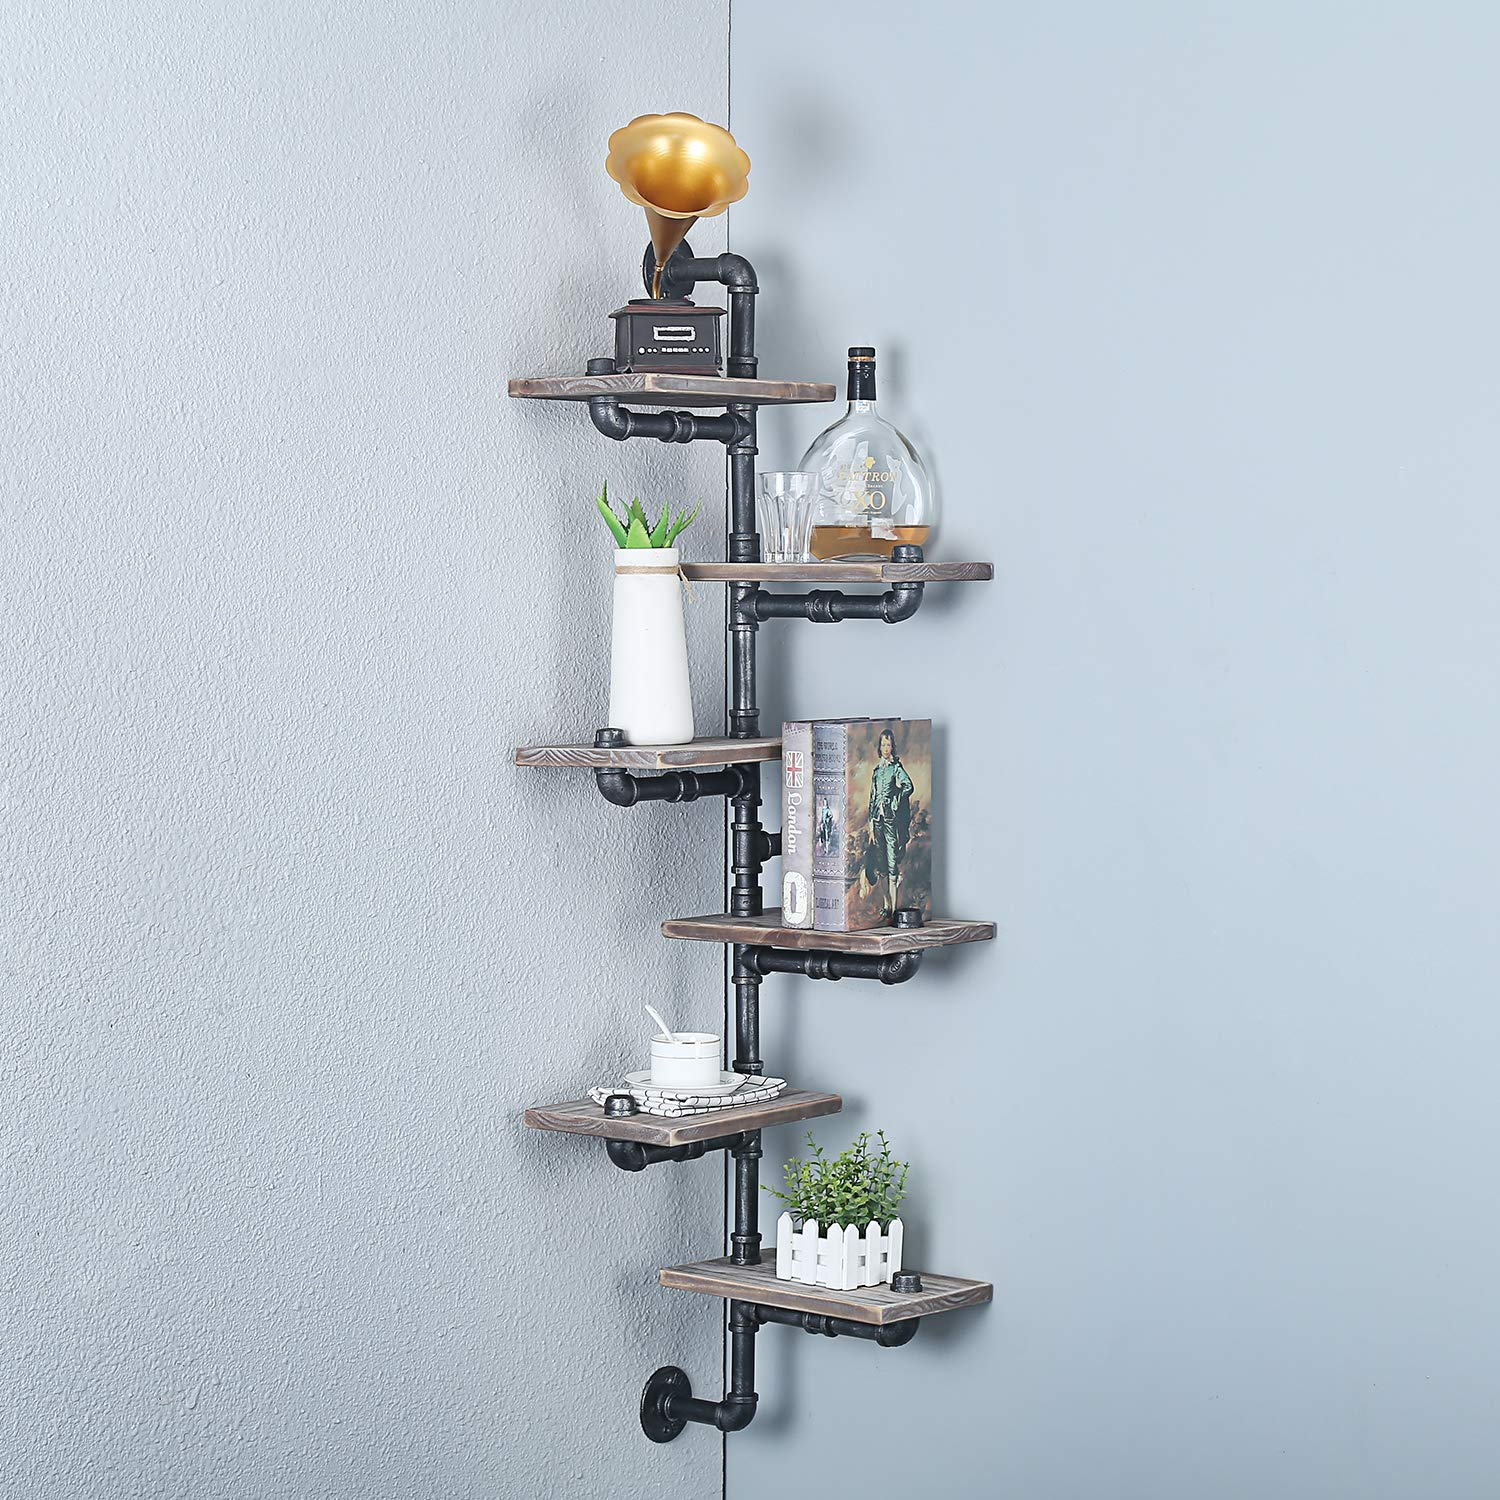 MBQQ Industrial Pipe Shelf,6-Tiers Wall Mount Bookshelf, Metal&Wood Corner Shelves,DIY Storage Shelving Rustic Floating Shelves,Home Decor Shelves